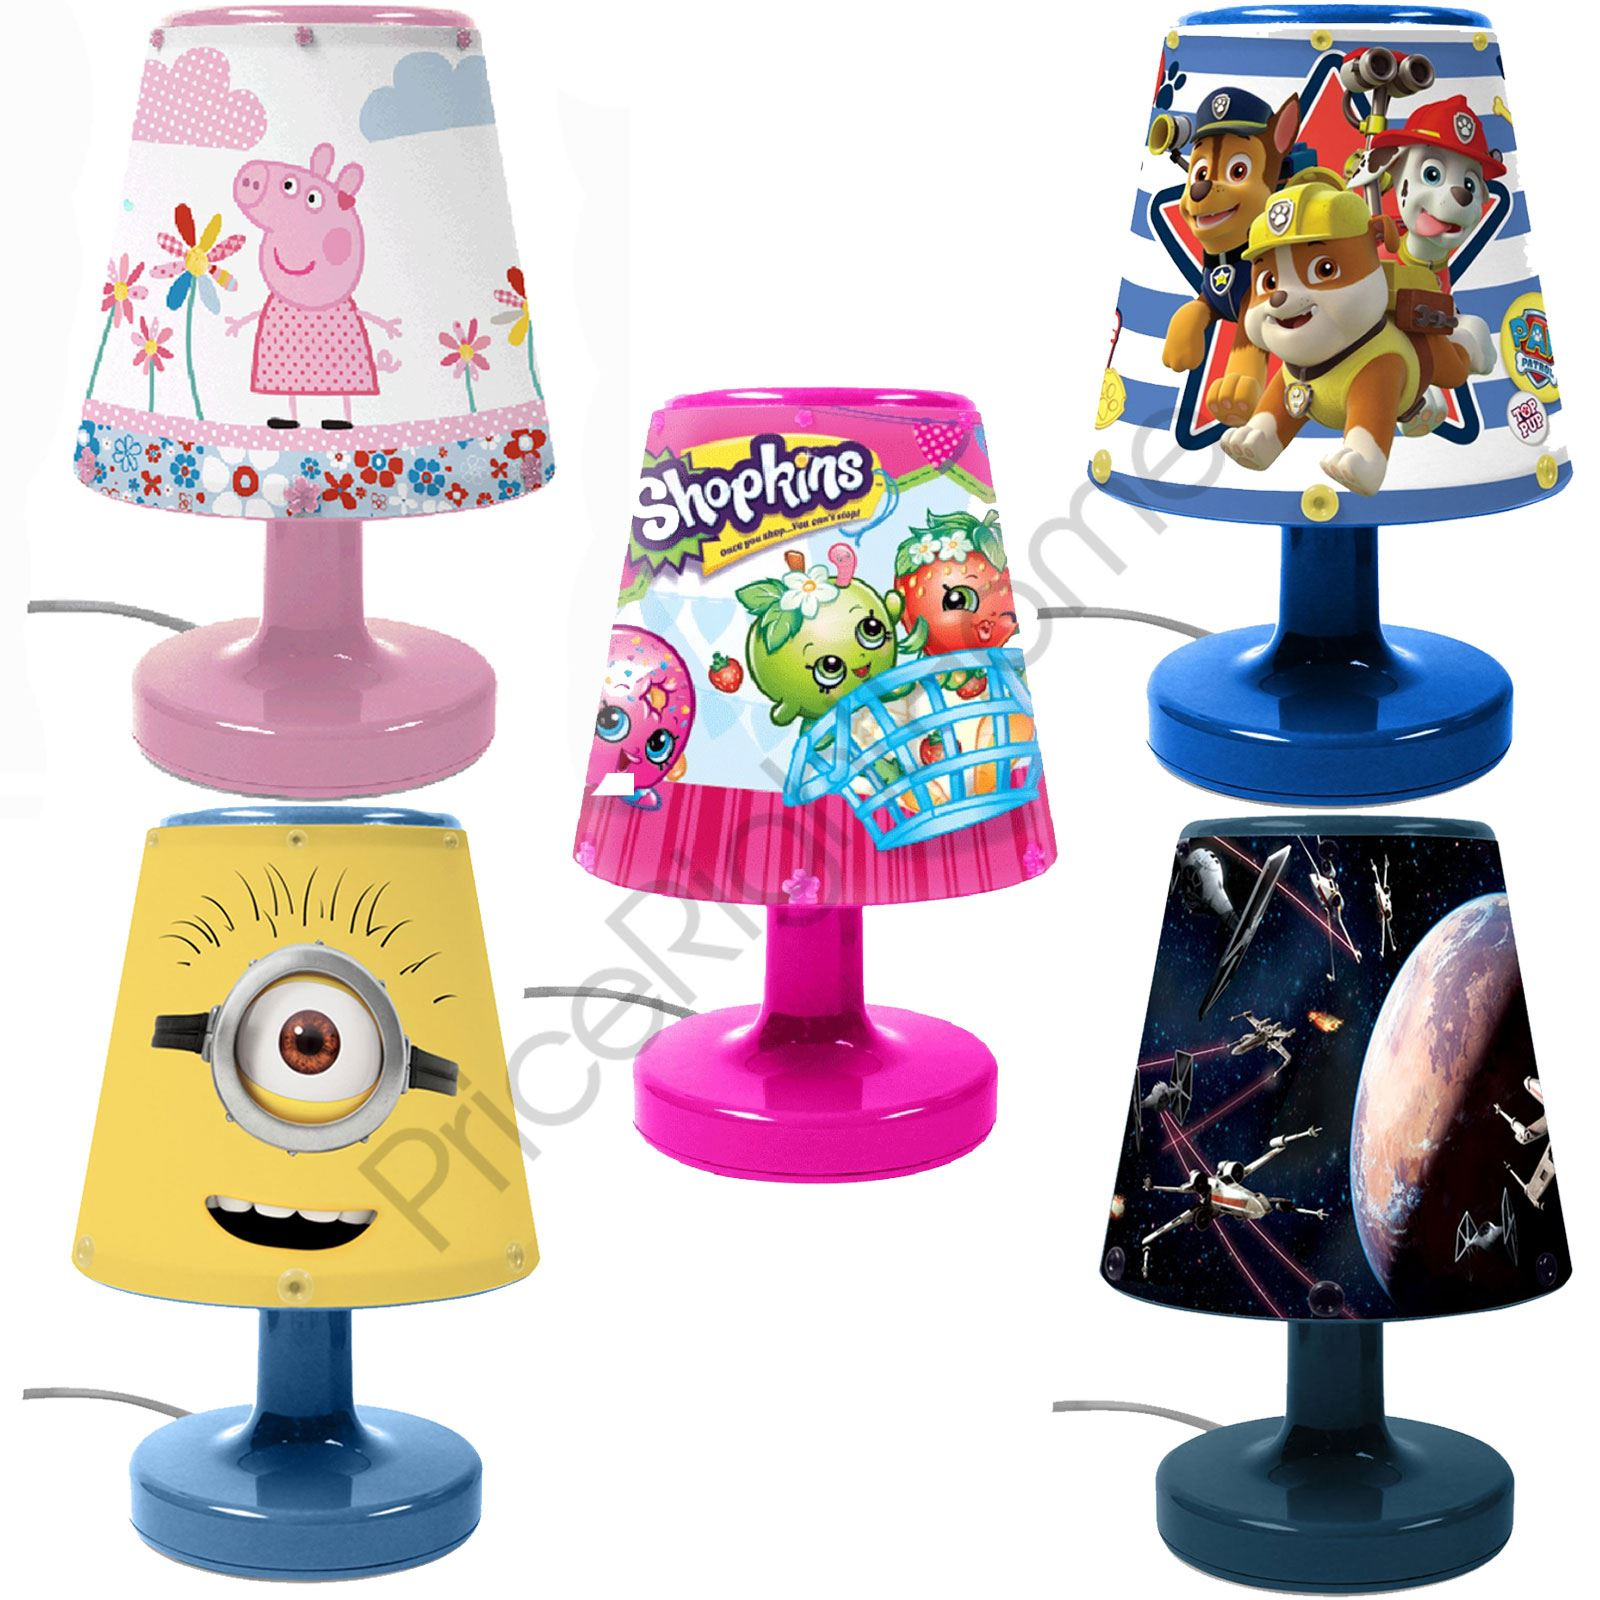 about disney character kids bedroom bedside lamps for boys and girls